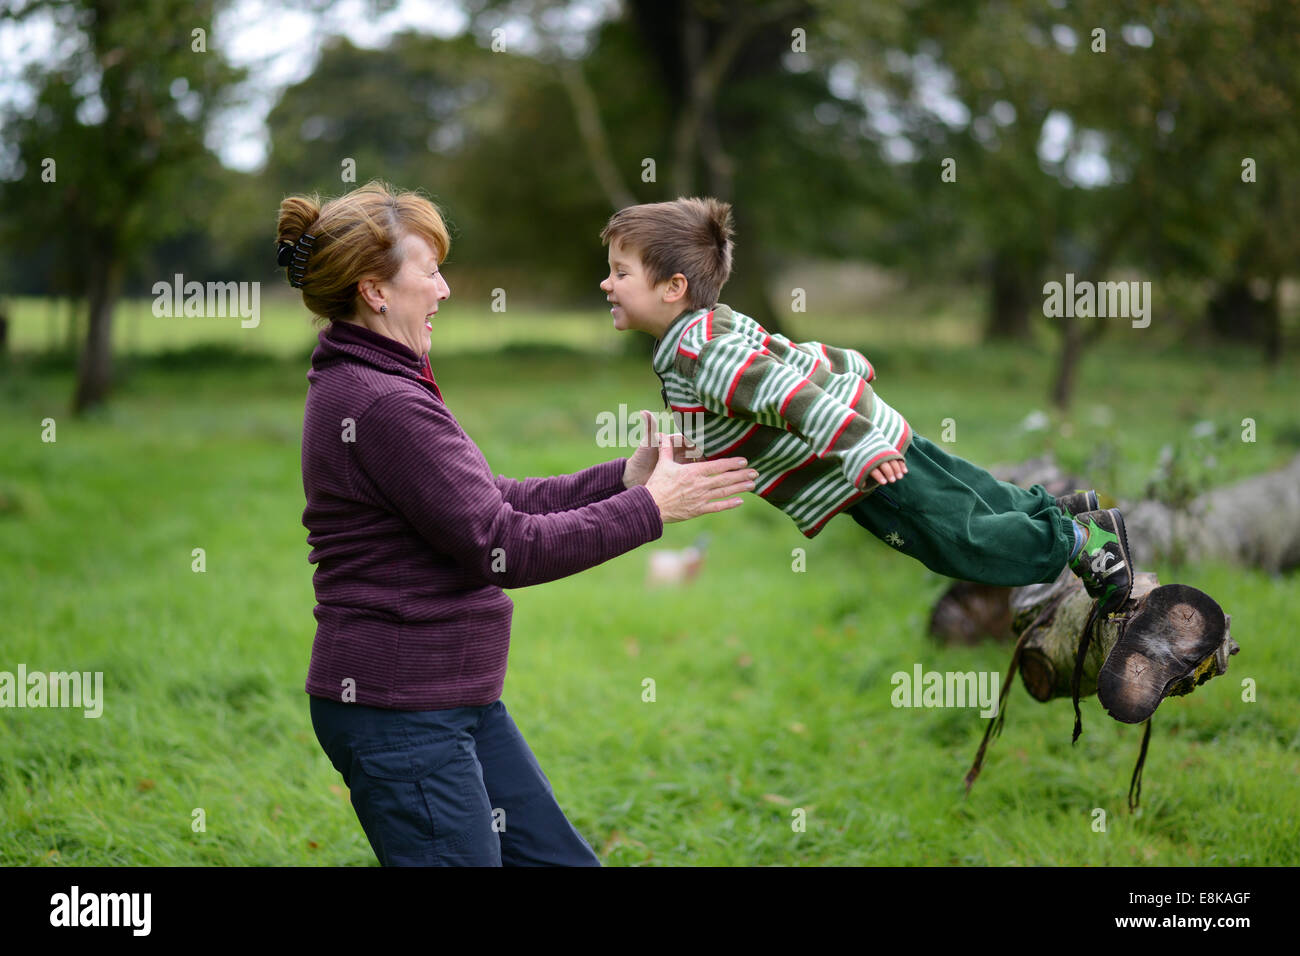 Child children boy having outdoor fun with grandmother jumping into the arms trust trusting Uk - Stock Image